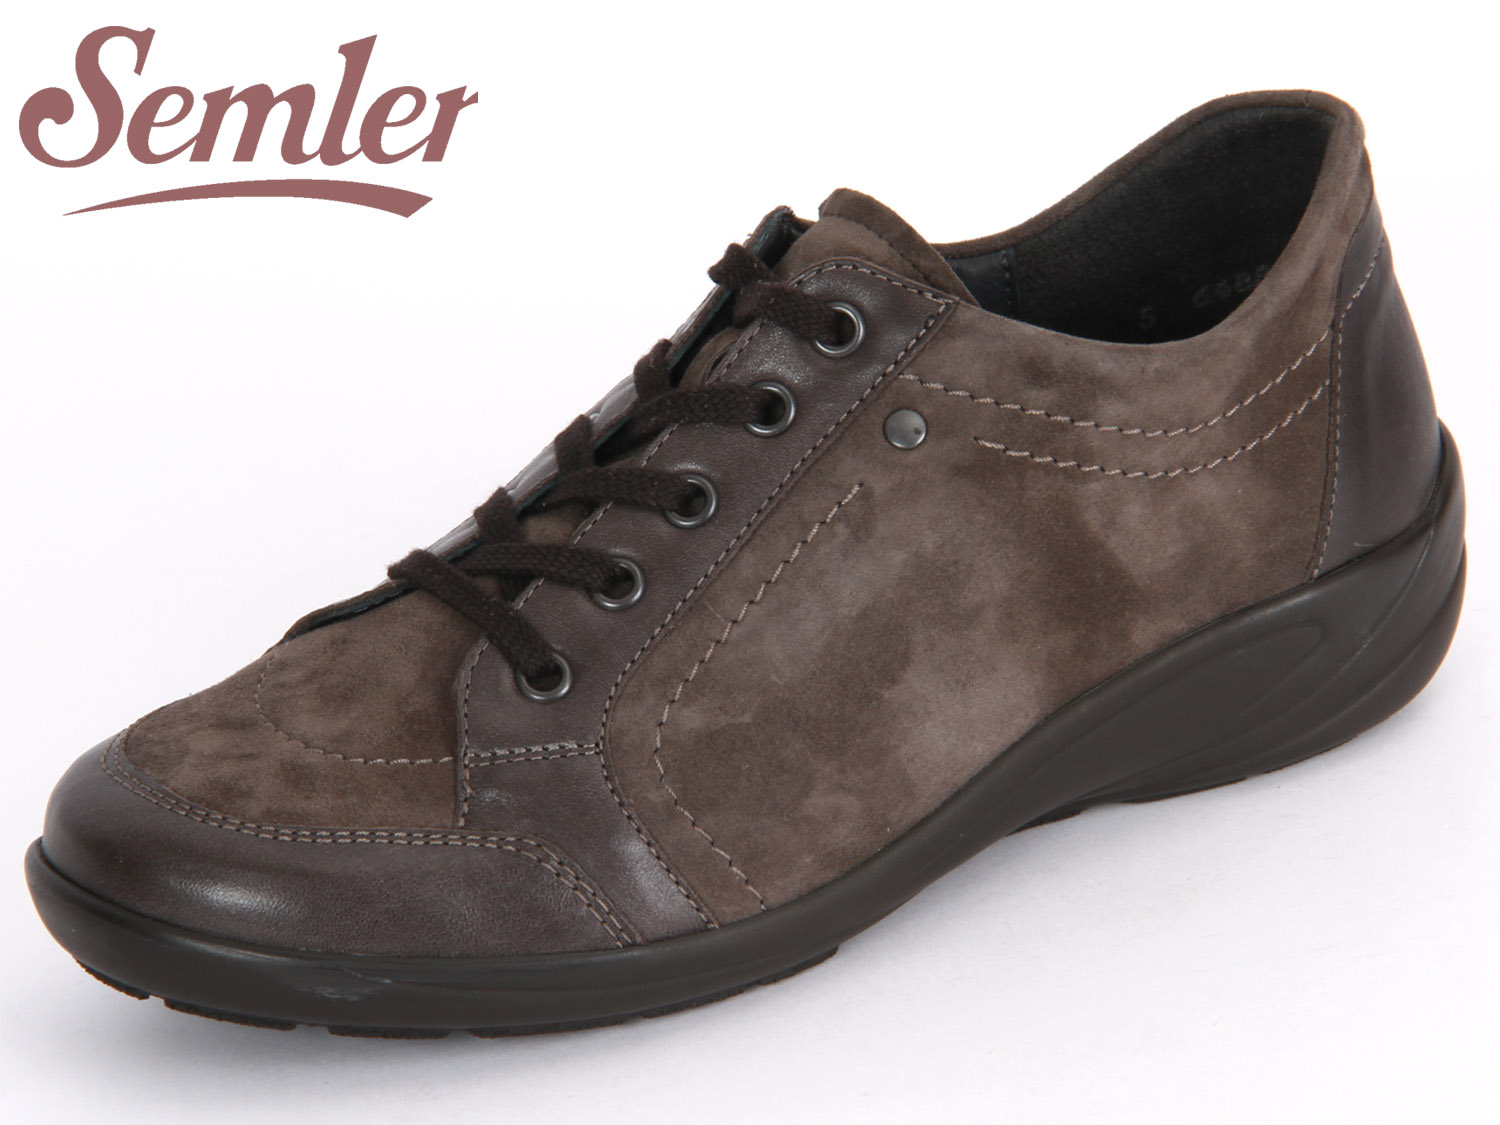 Semler Shoes Online